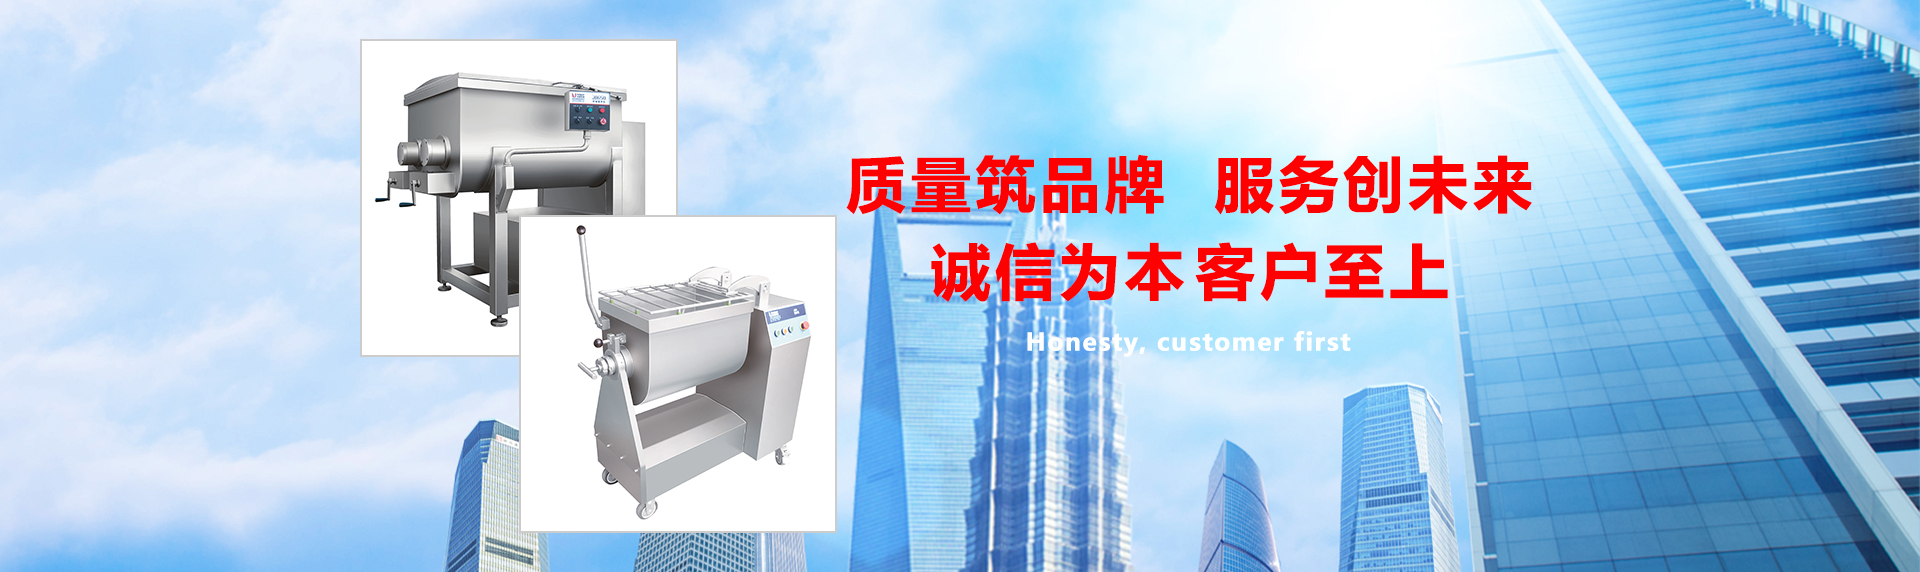 http://www.yungongjixie.com/data/upload/202012/20201226092633_969.jpg